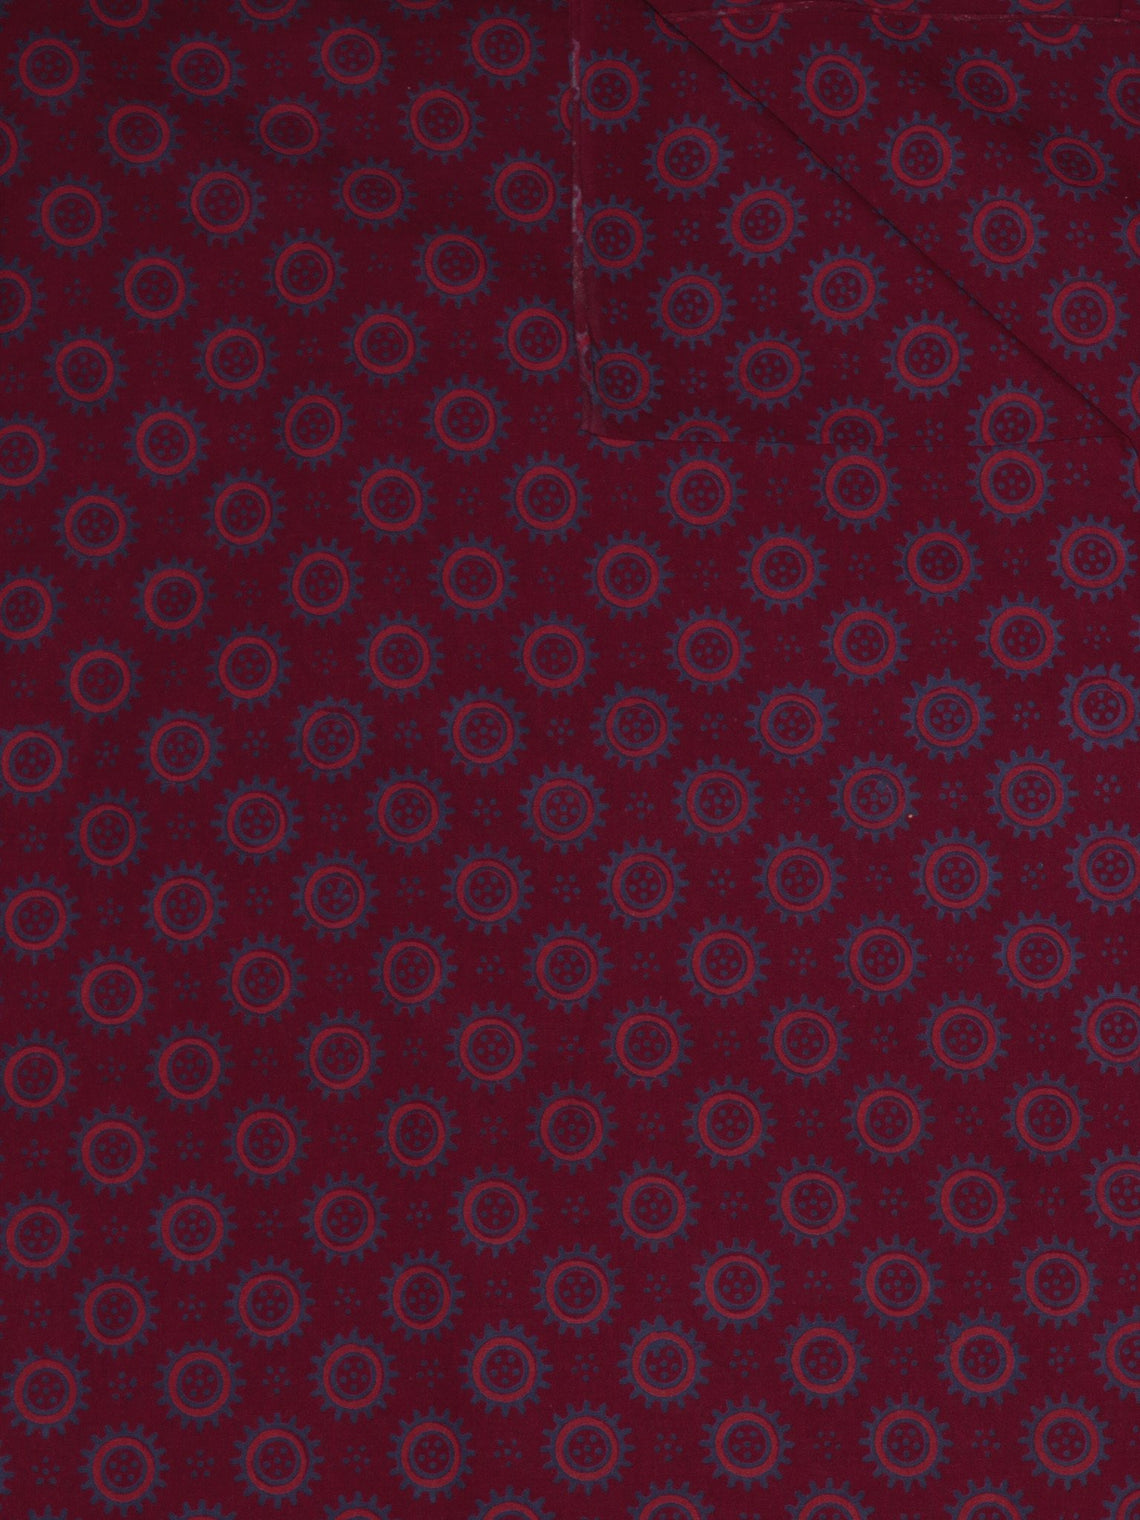 Maroon Pink Blue Ajrakh Printed Cotton Fabric Per Meter - F0916715